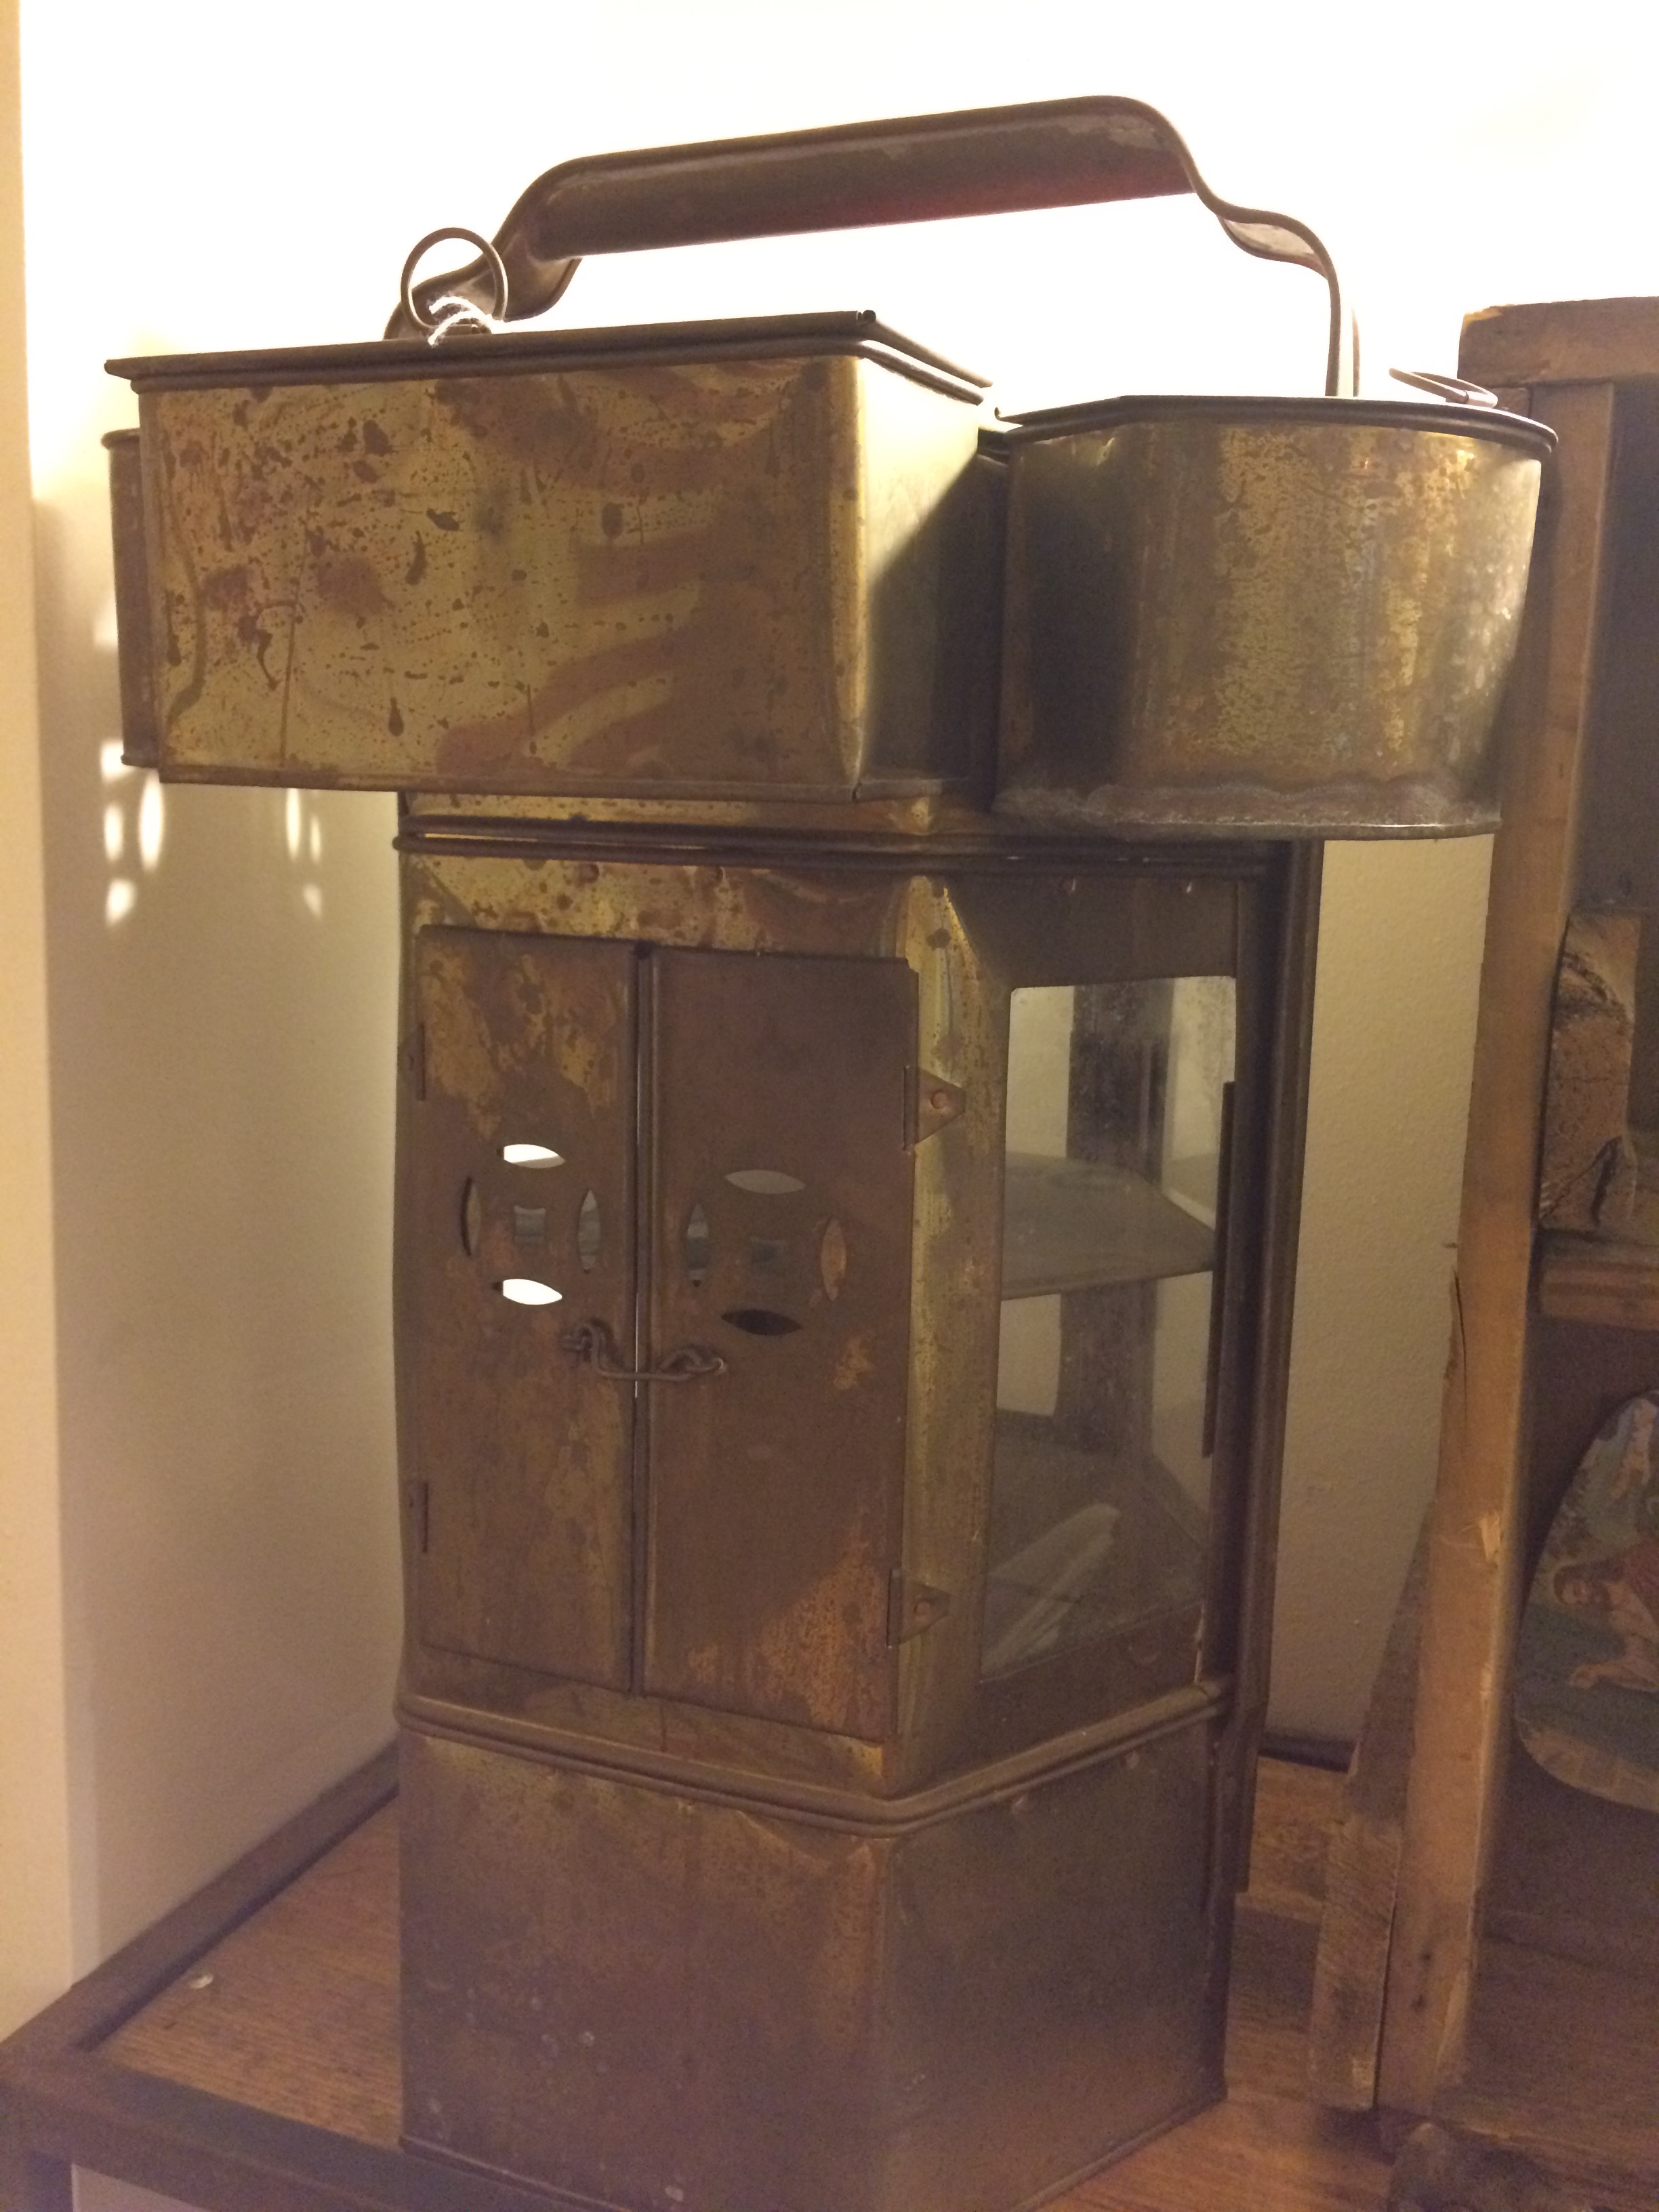 Cooking Warmers Vintage Fireplace ~ Antique food warmer best decor ideas